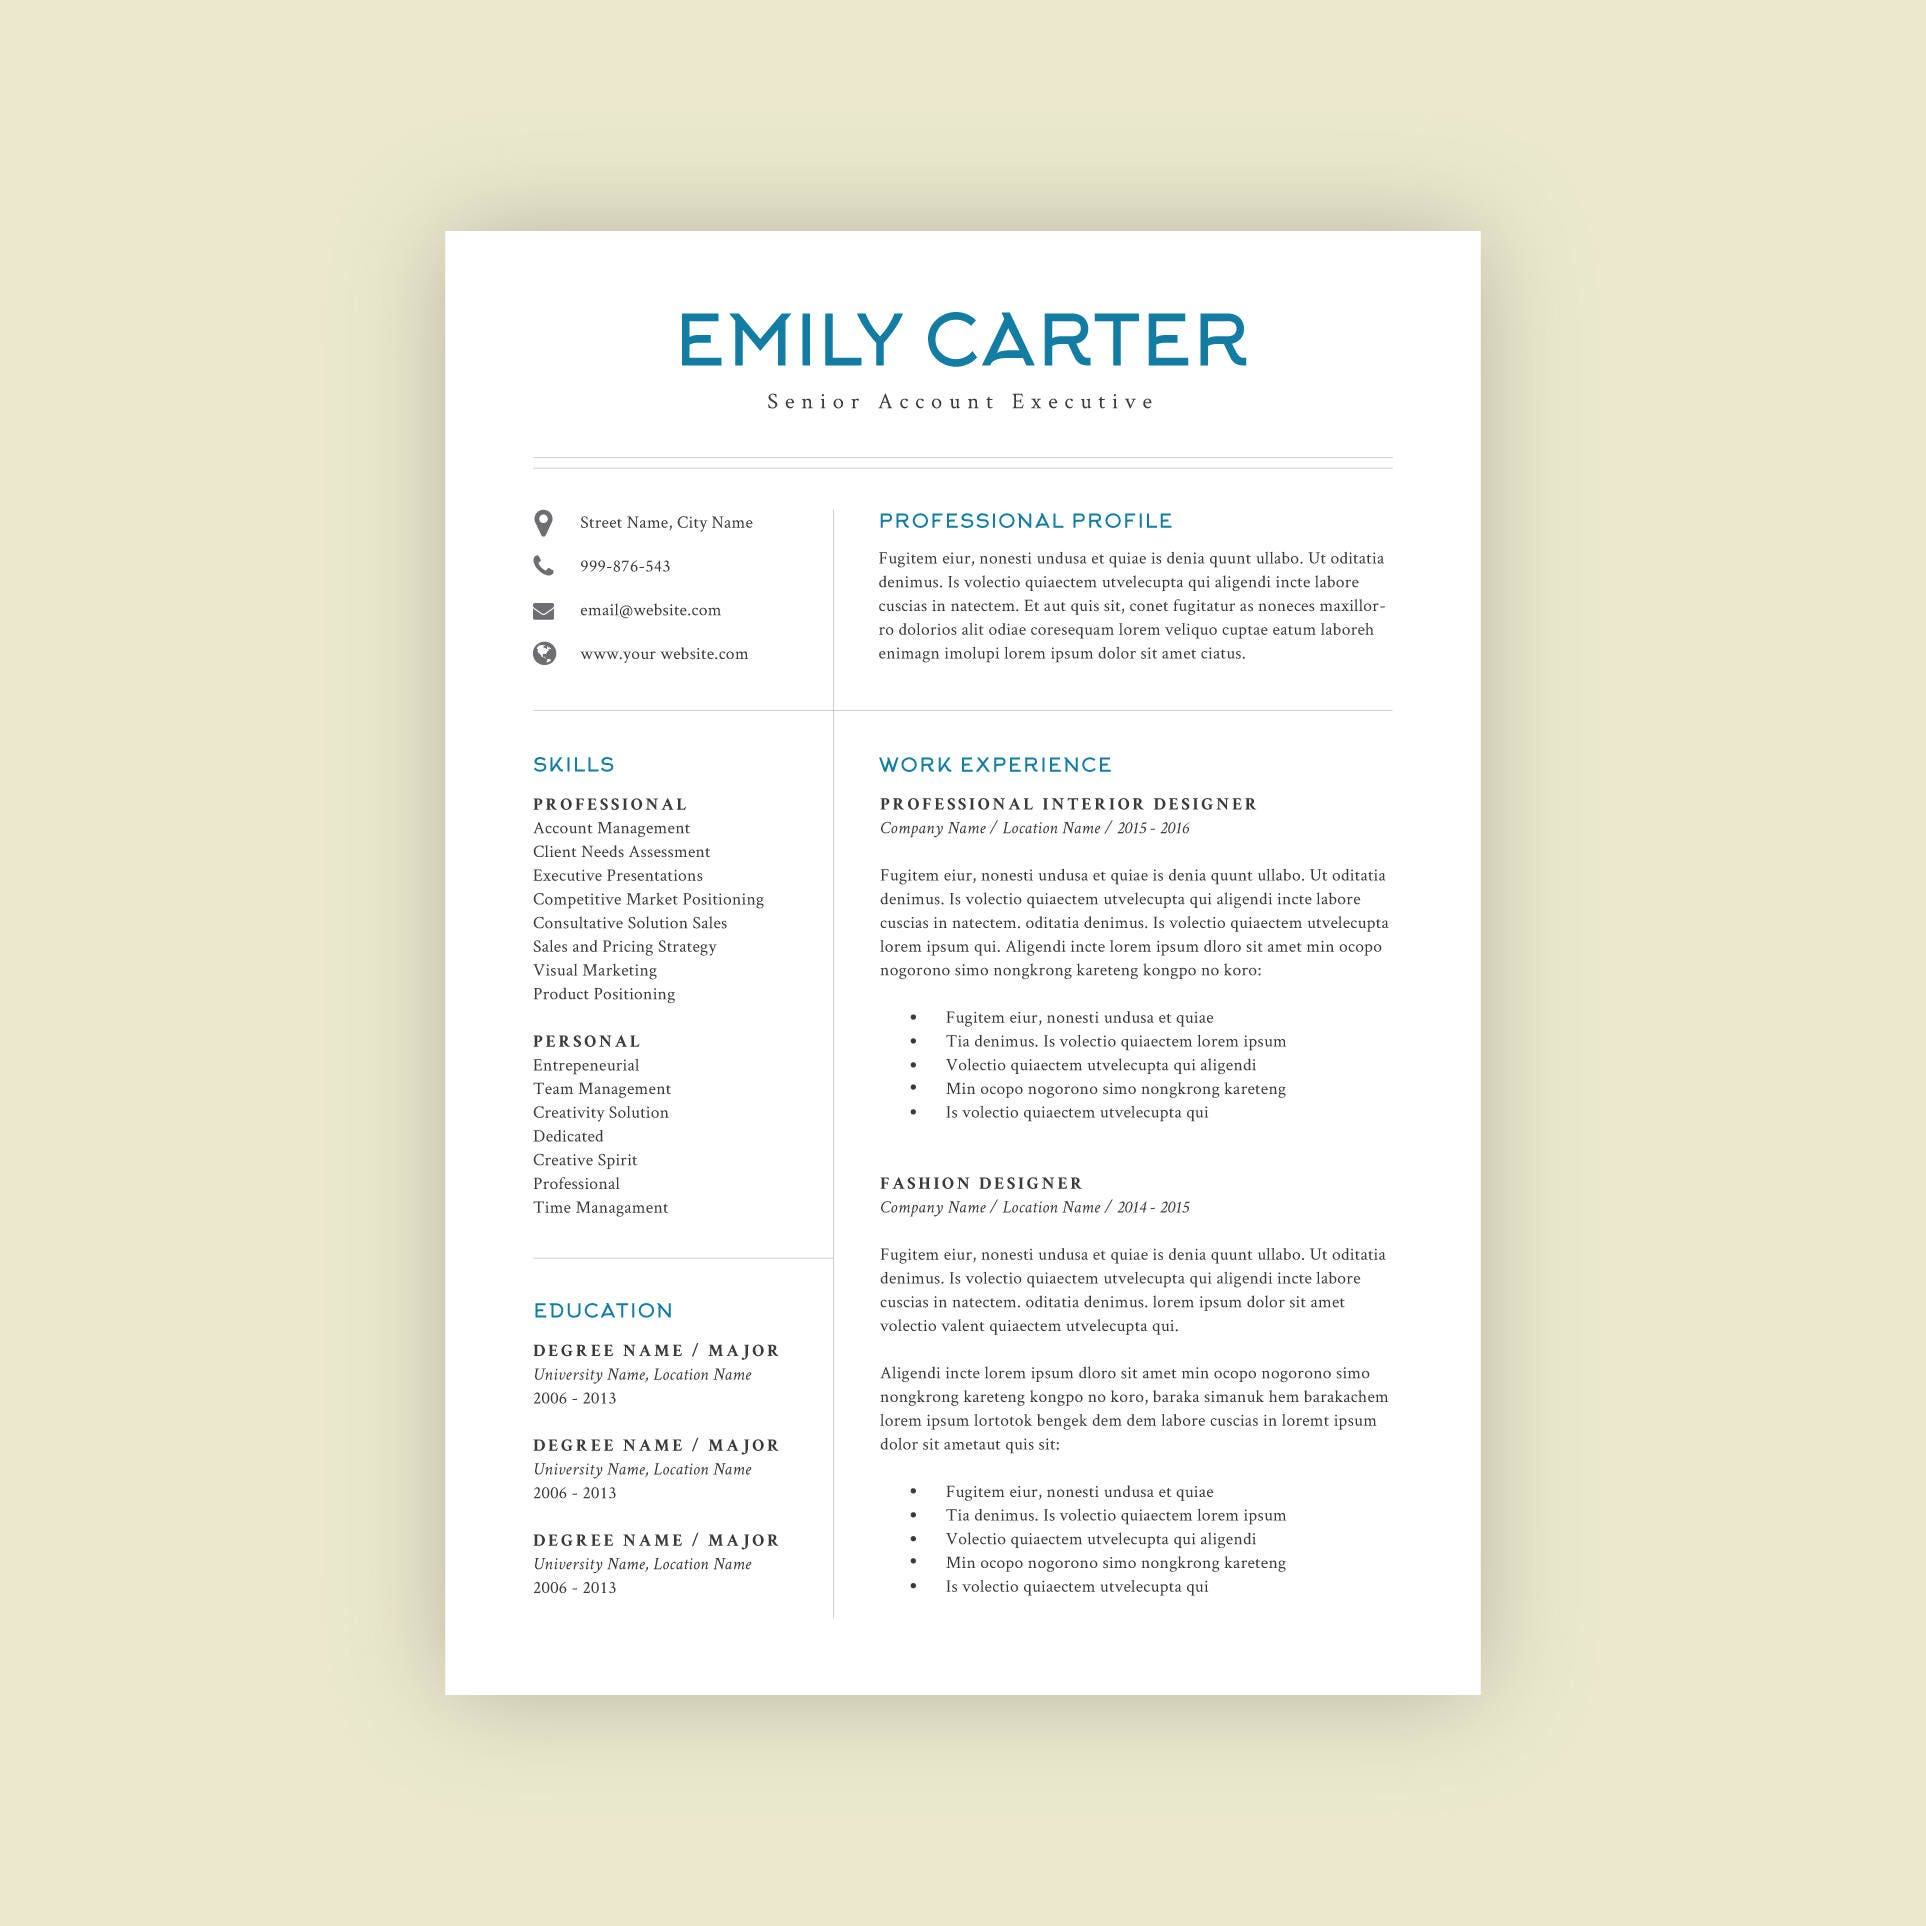 Resume Template Professional Resume Modern Resume Design